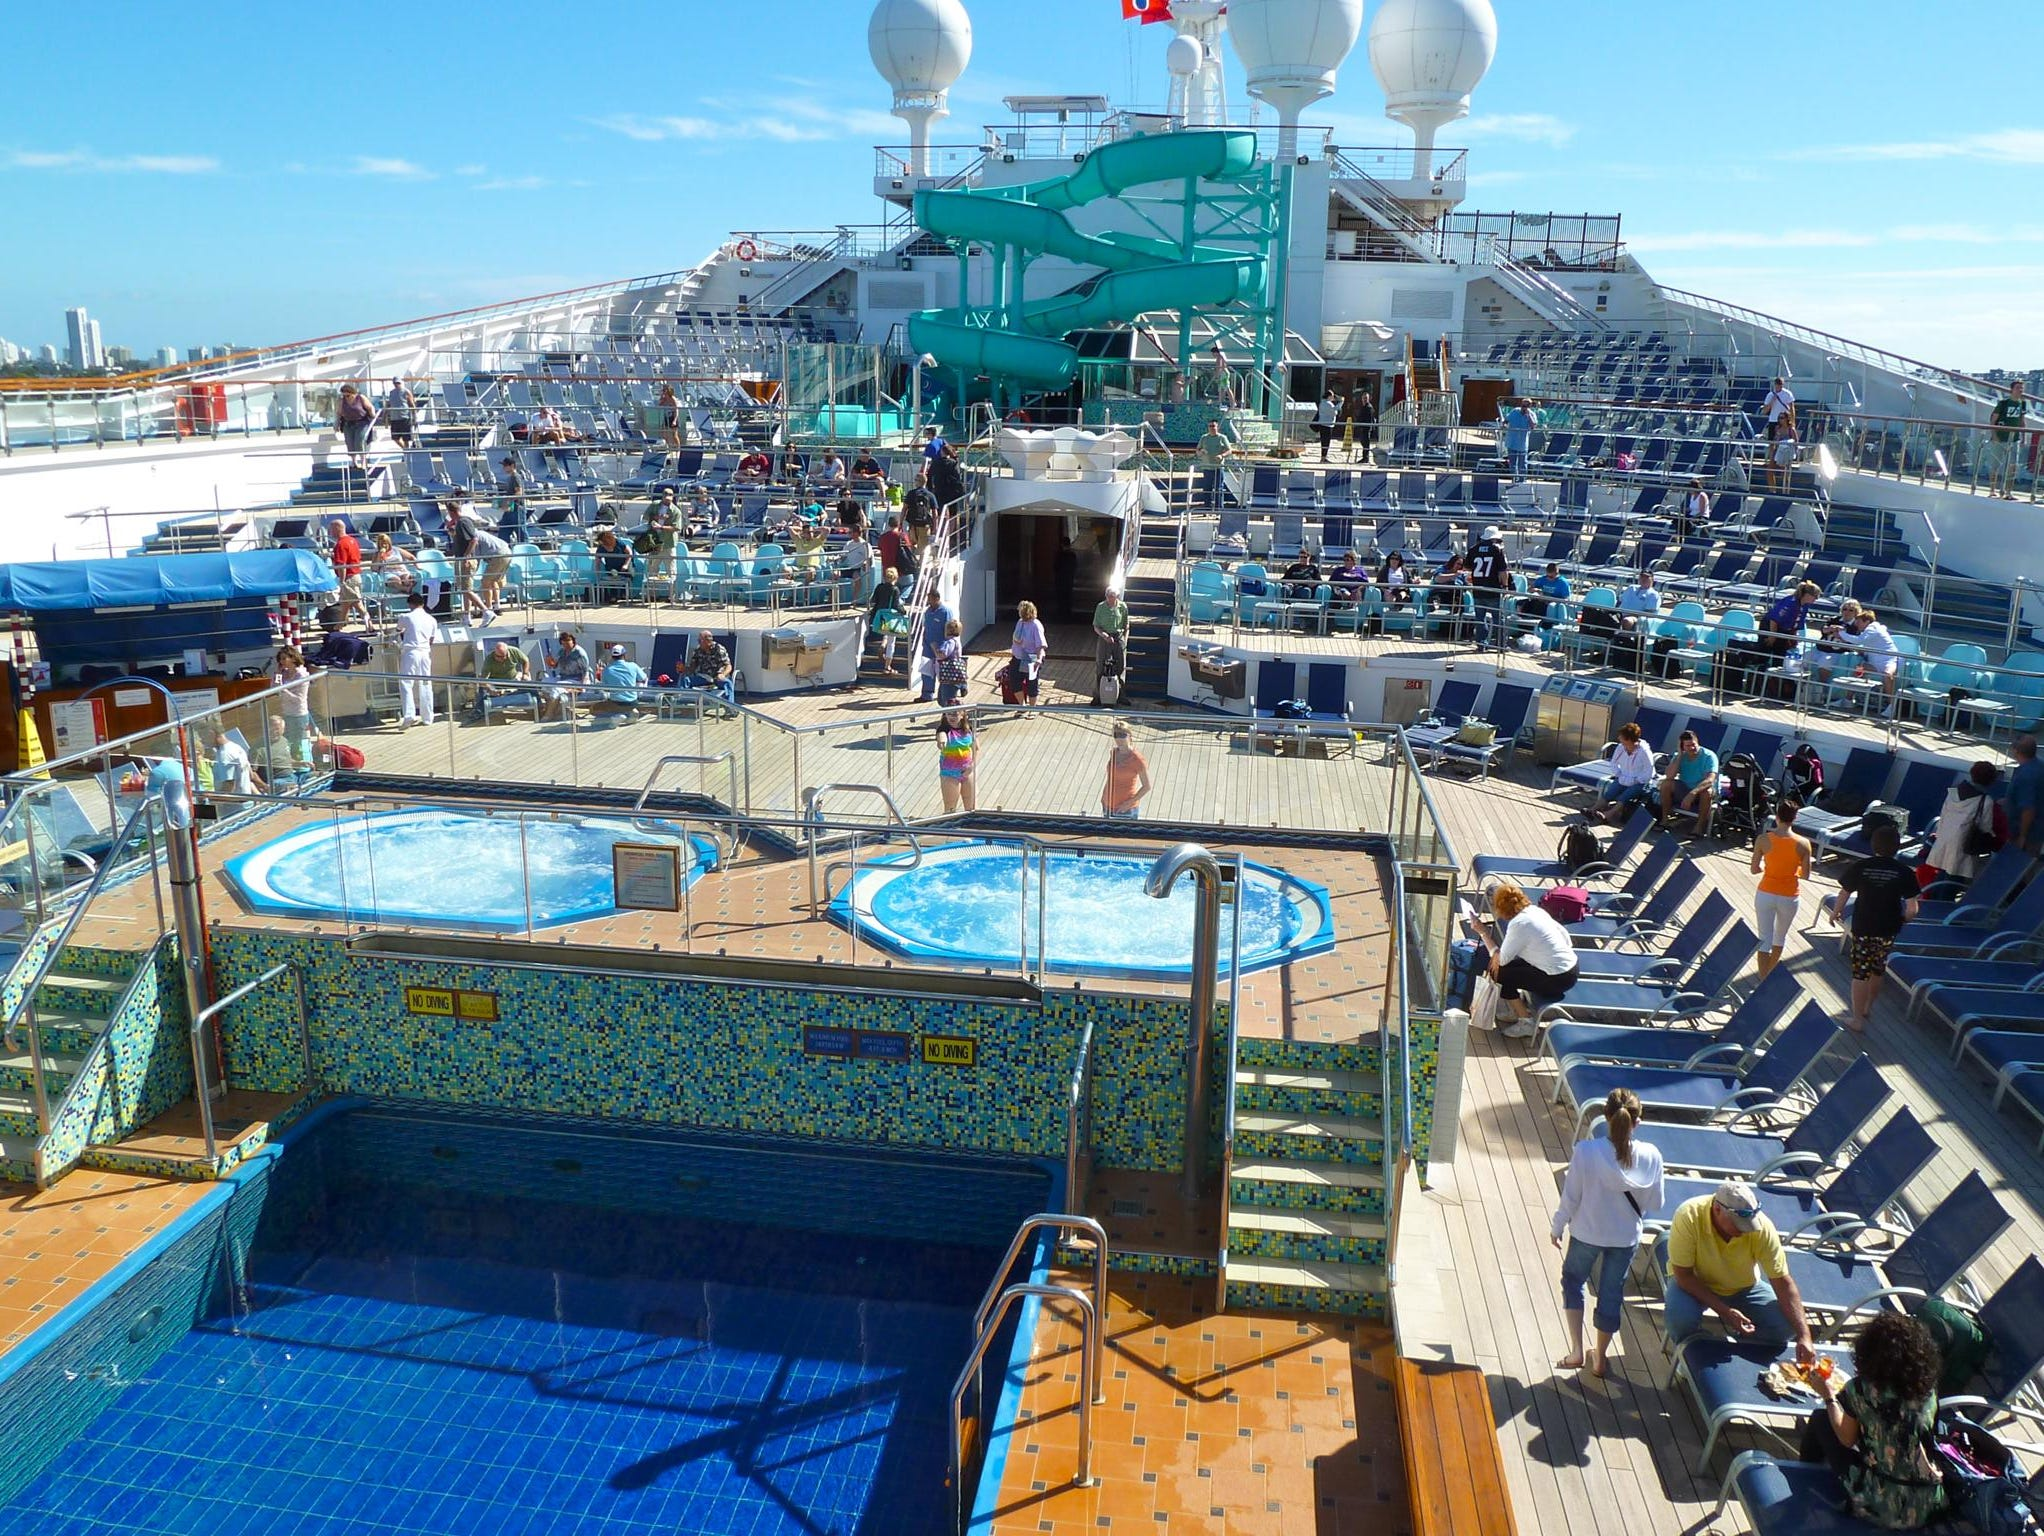 Here is a forward facing view from the aft portion of Deck 12.